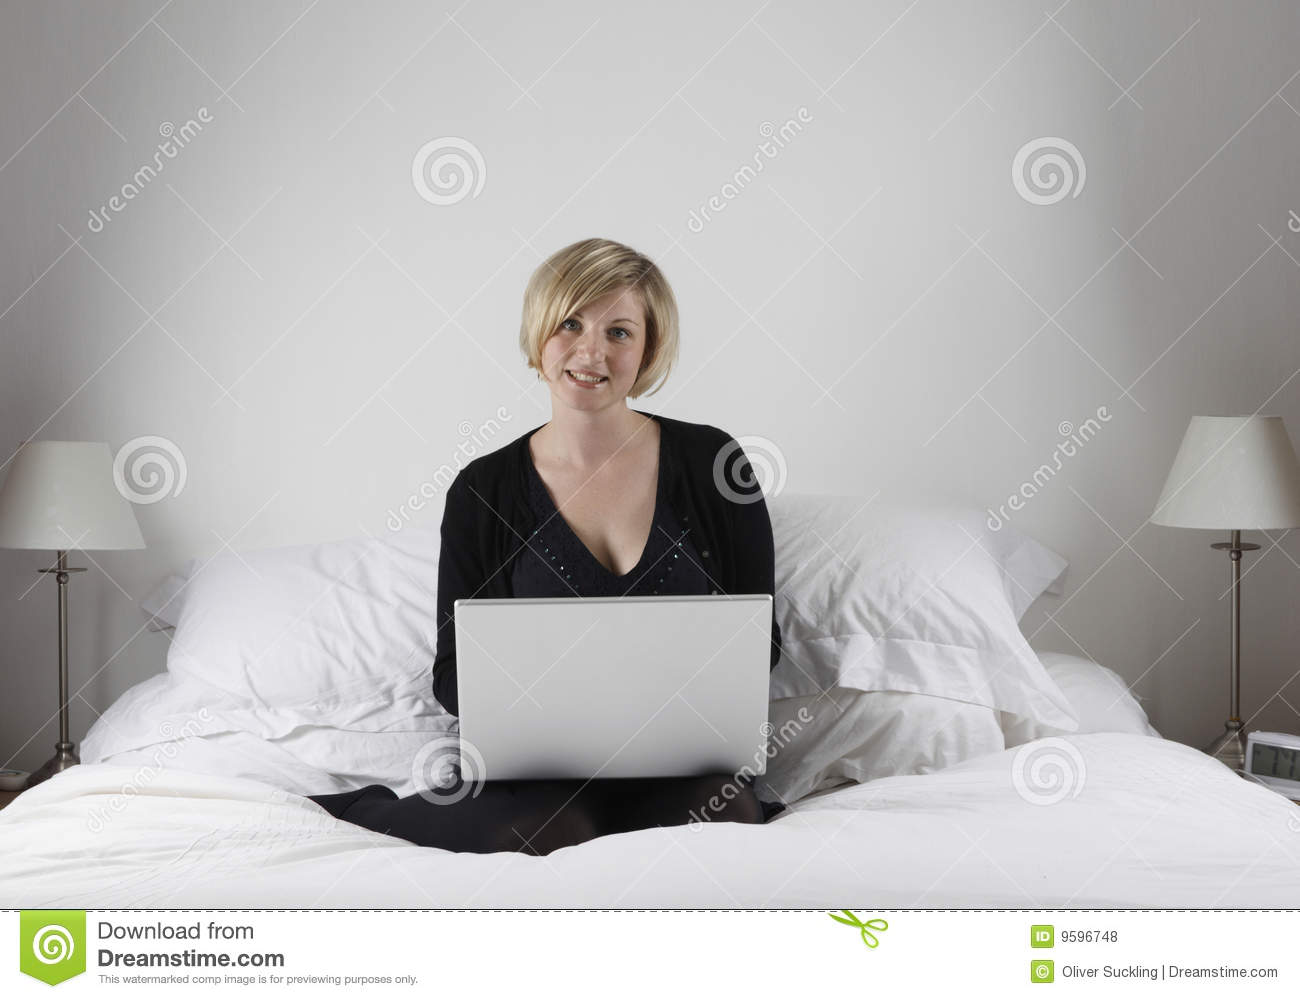 How To Be More Confident In Bed Woman With Laptop In Bed Royalty Free Stock Photos Image